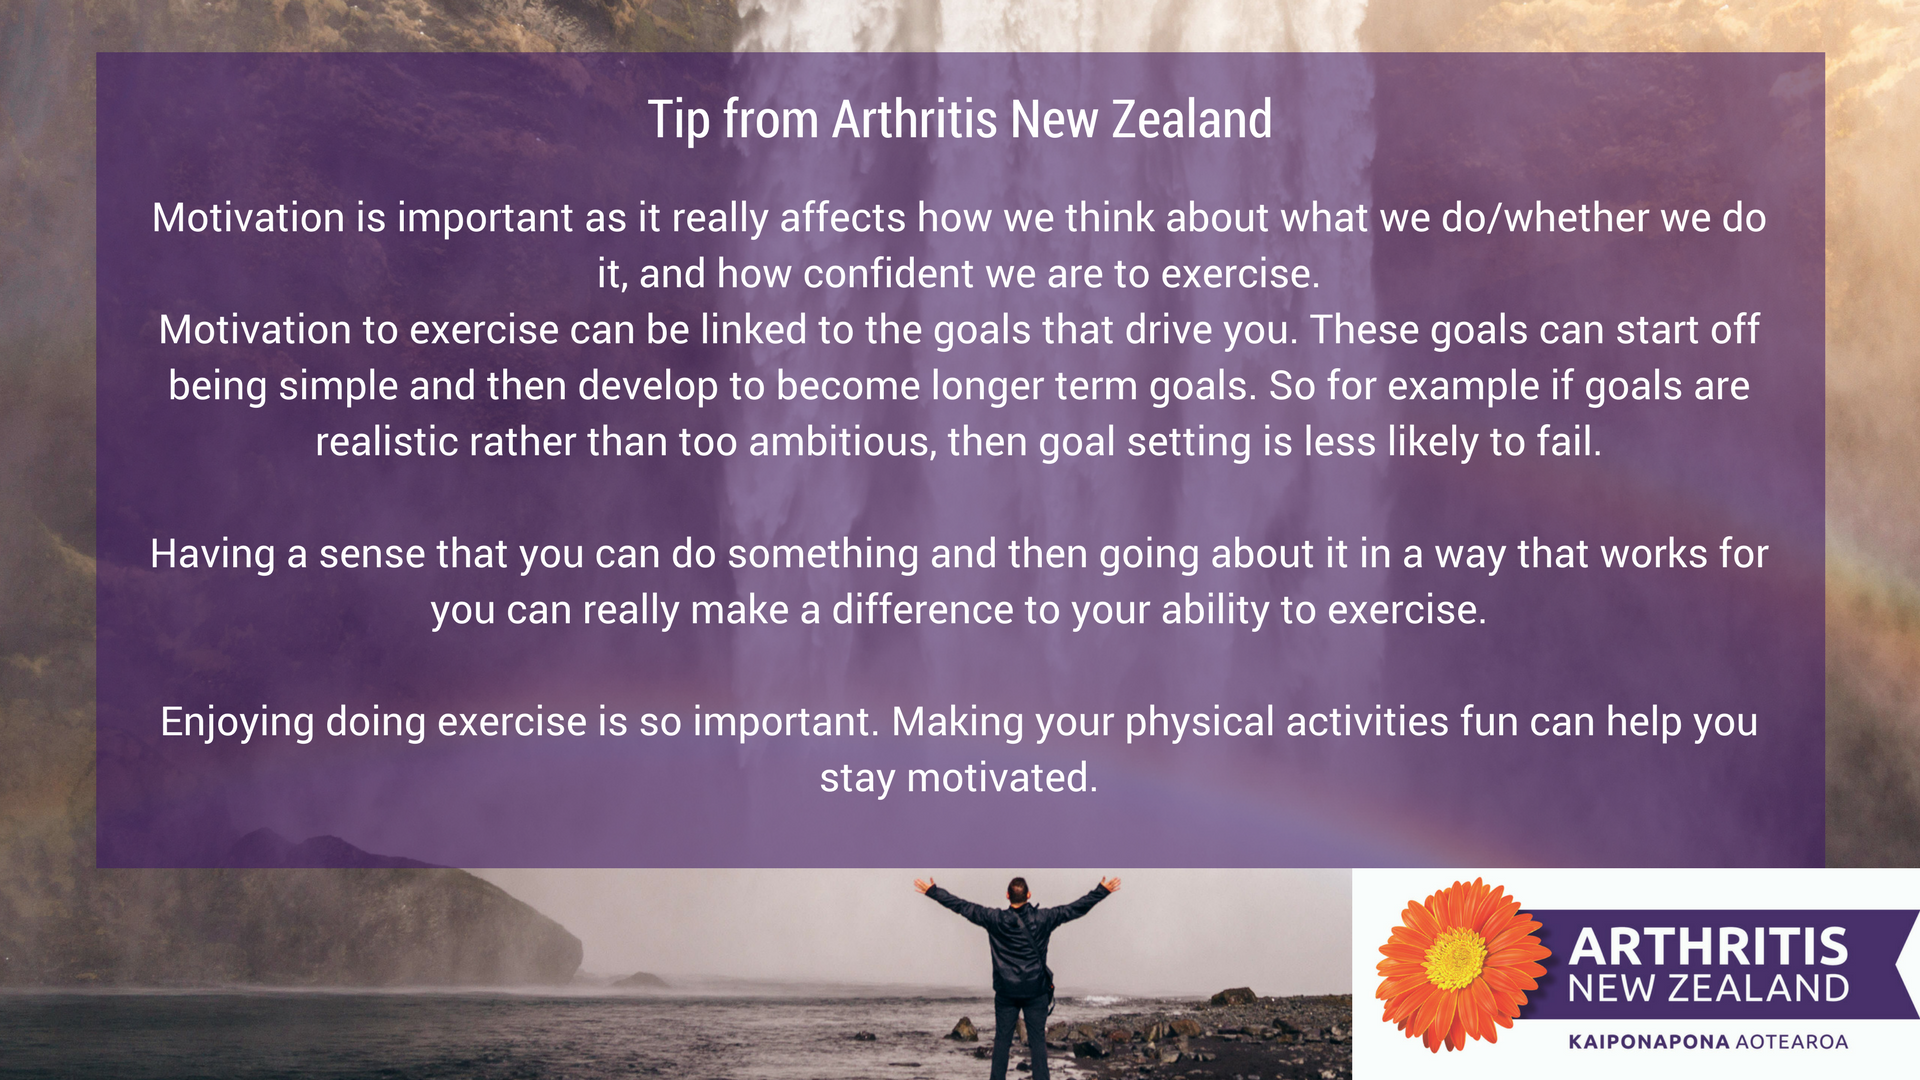 5 - Exercise tips from the Arthritis New Zealand community